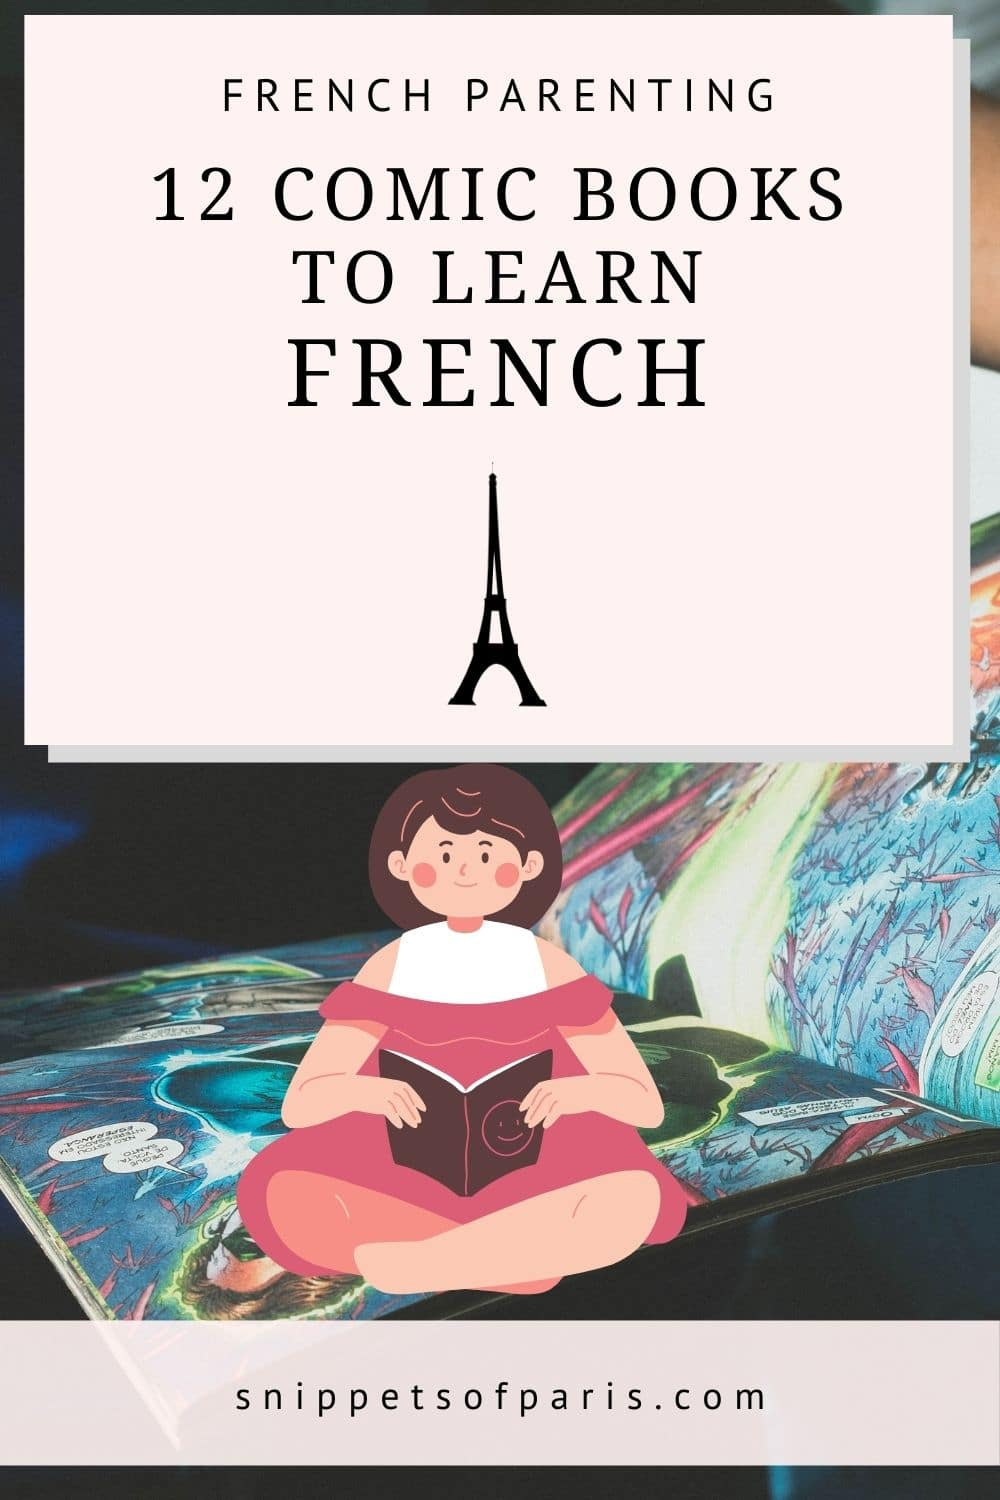 12 French Comics to love learning French